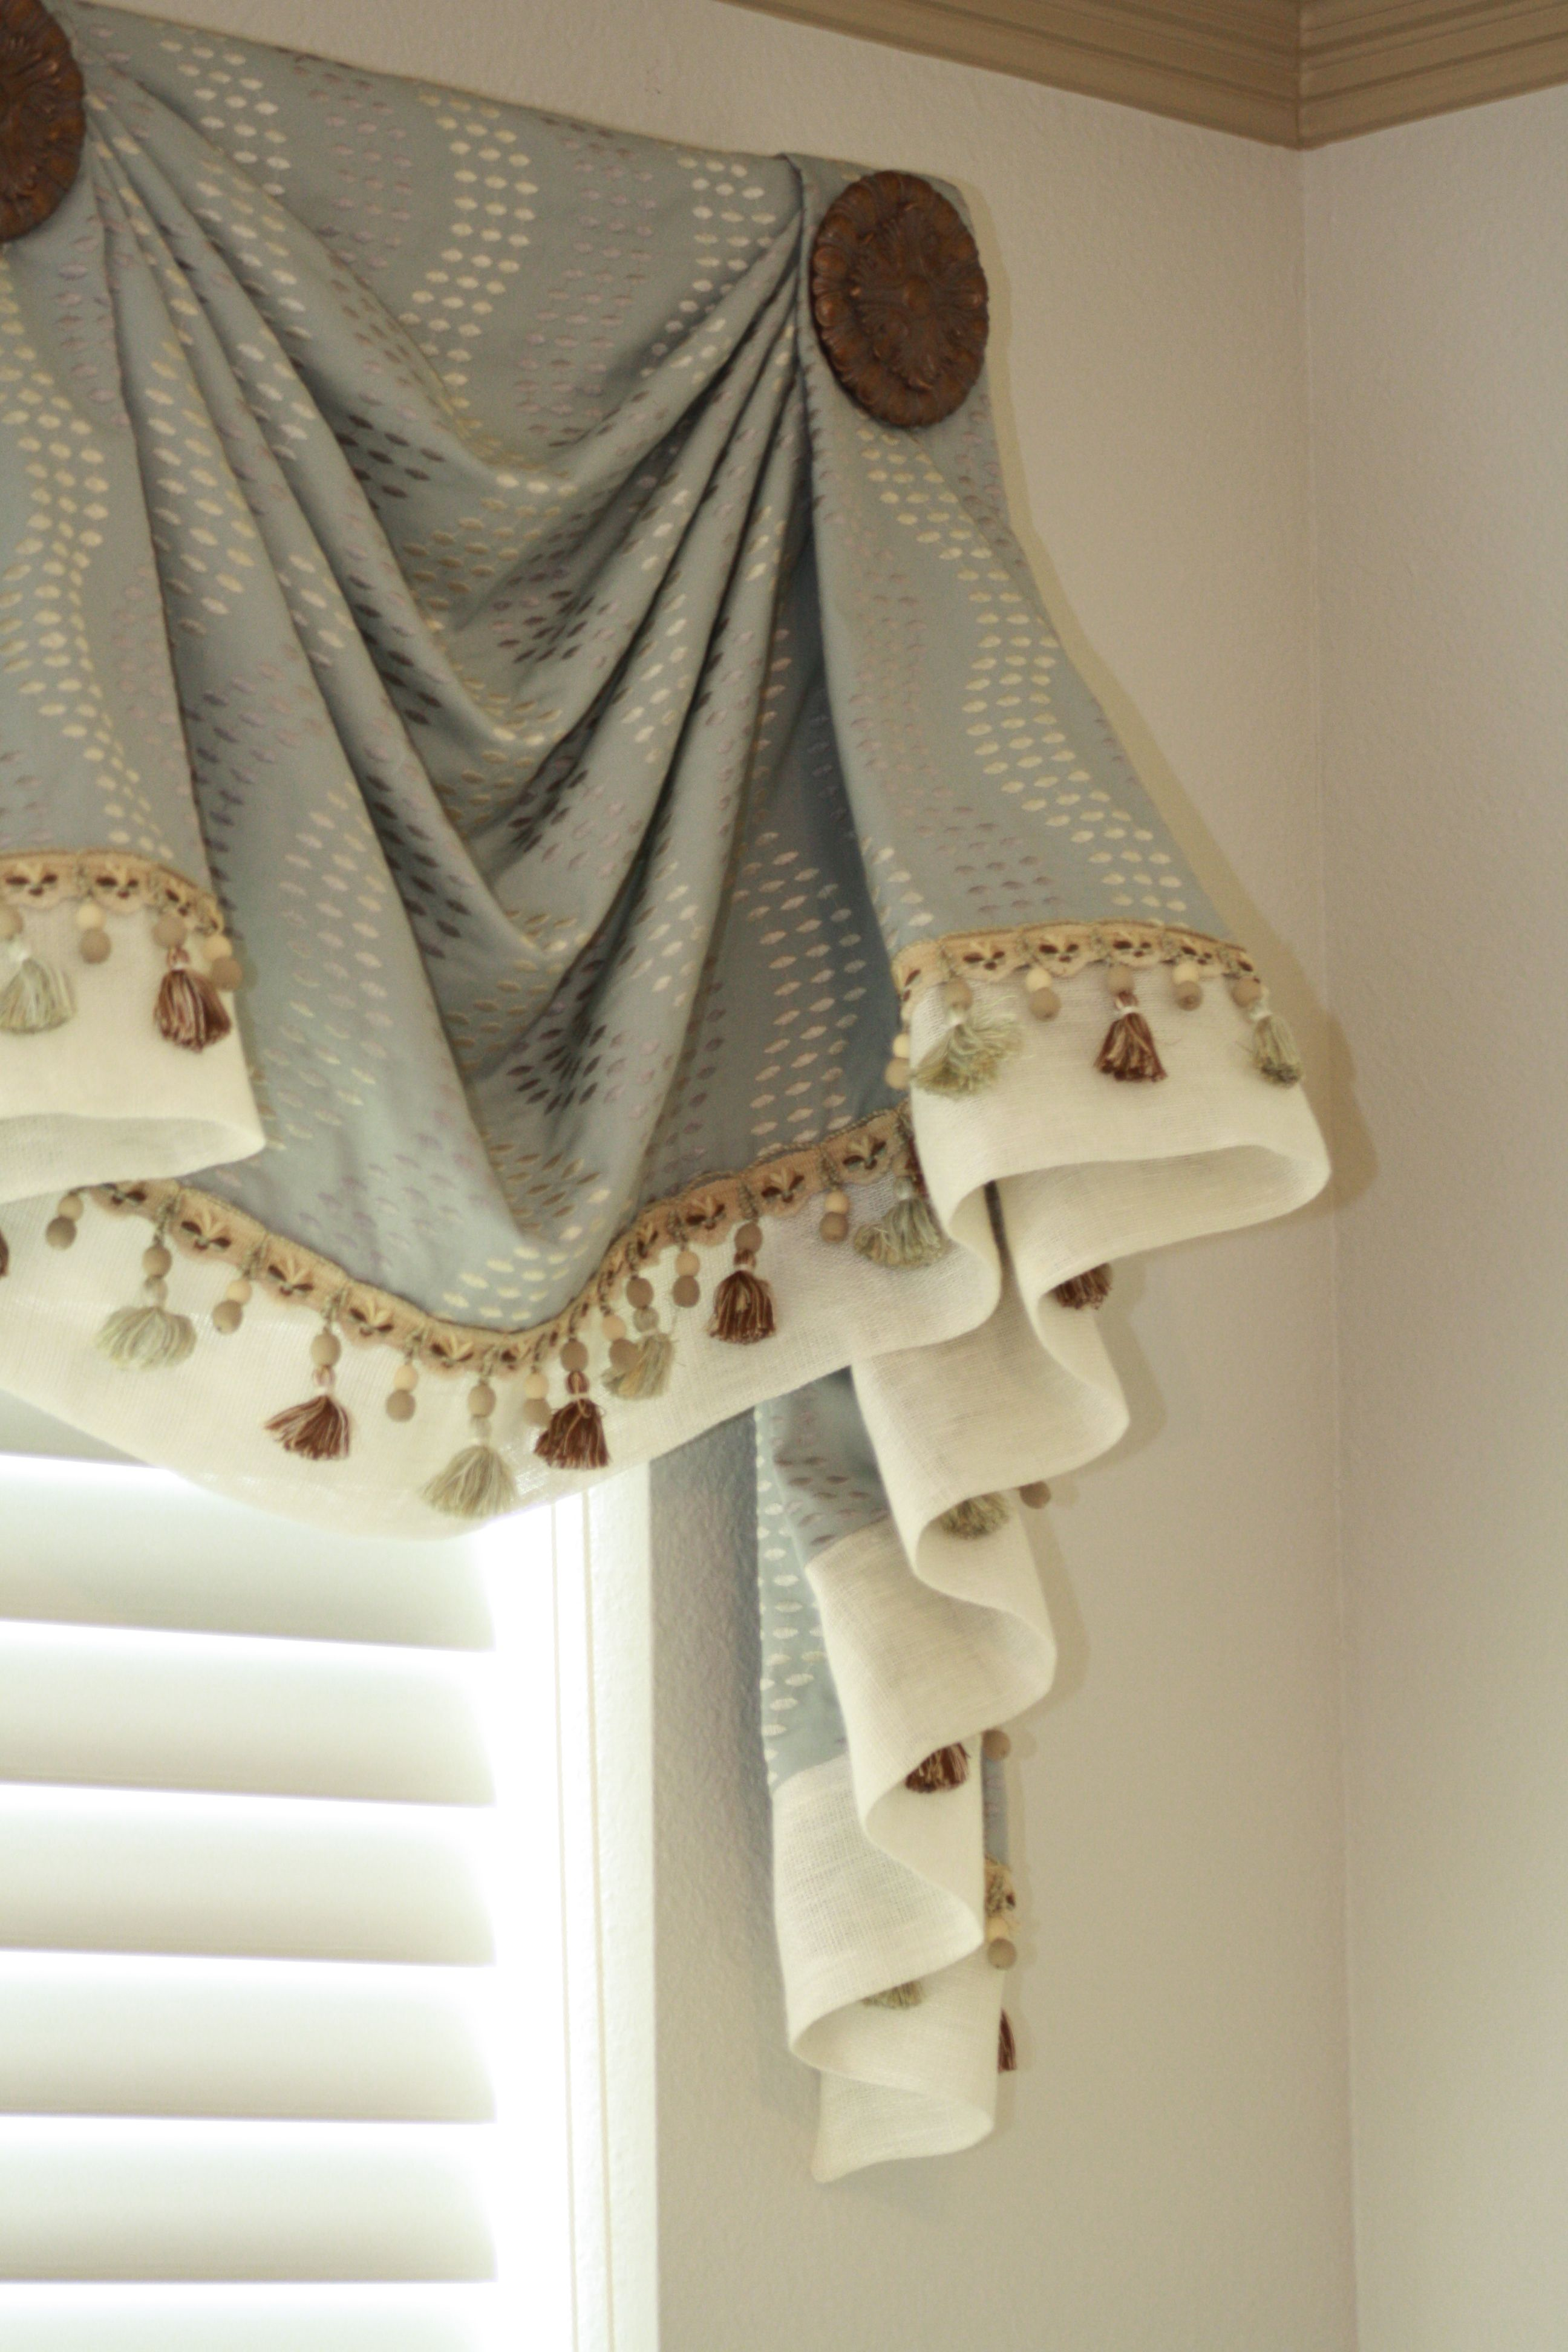 30 Styles of New Curtains | Drapery designs